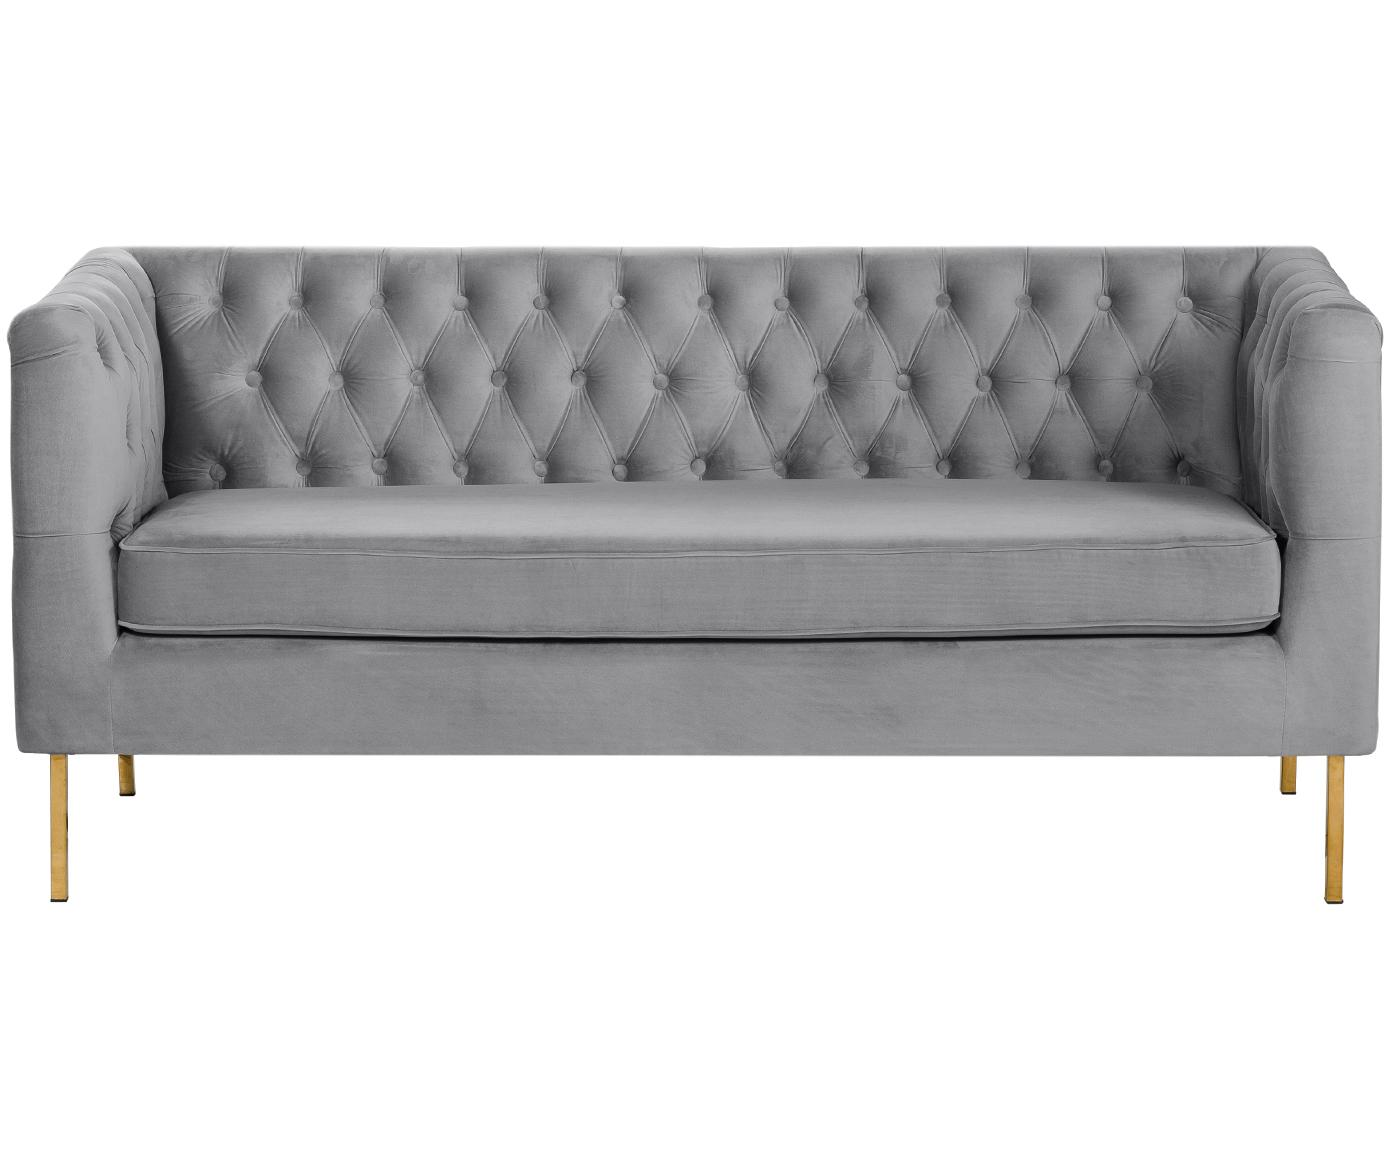 Outstanding Chesterfield Samt Sofa Chiara 2 Sitzer Pdpeps Interior Chair Design Pdpepsorg